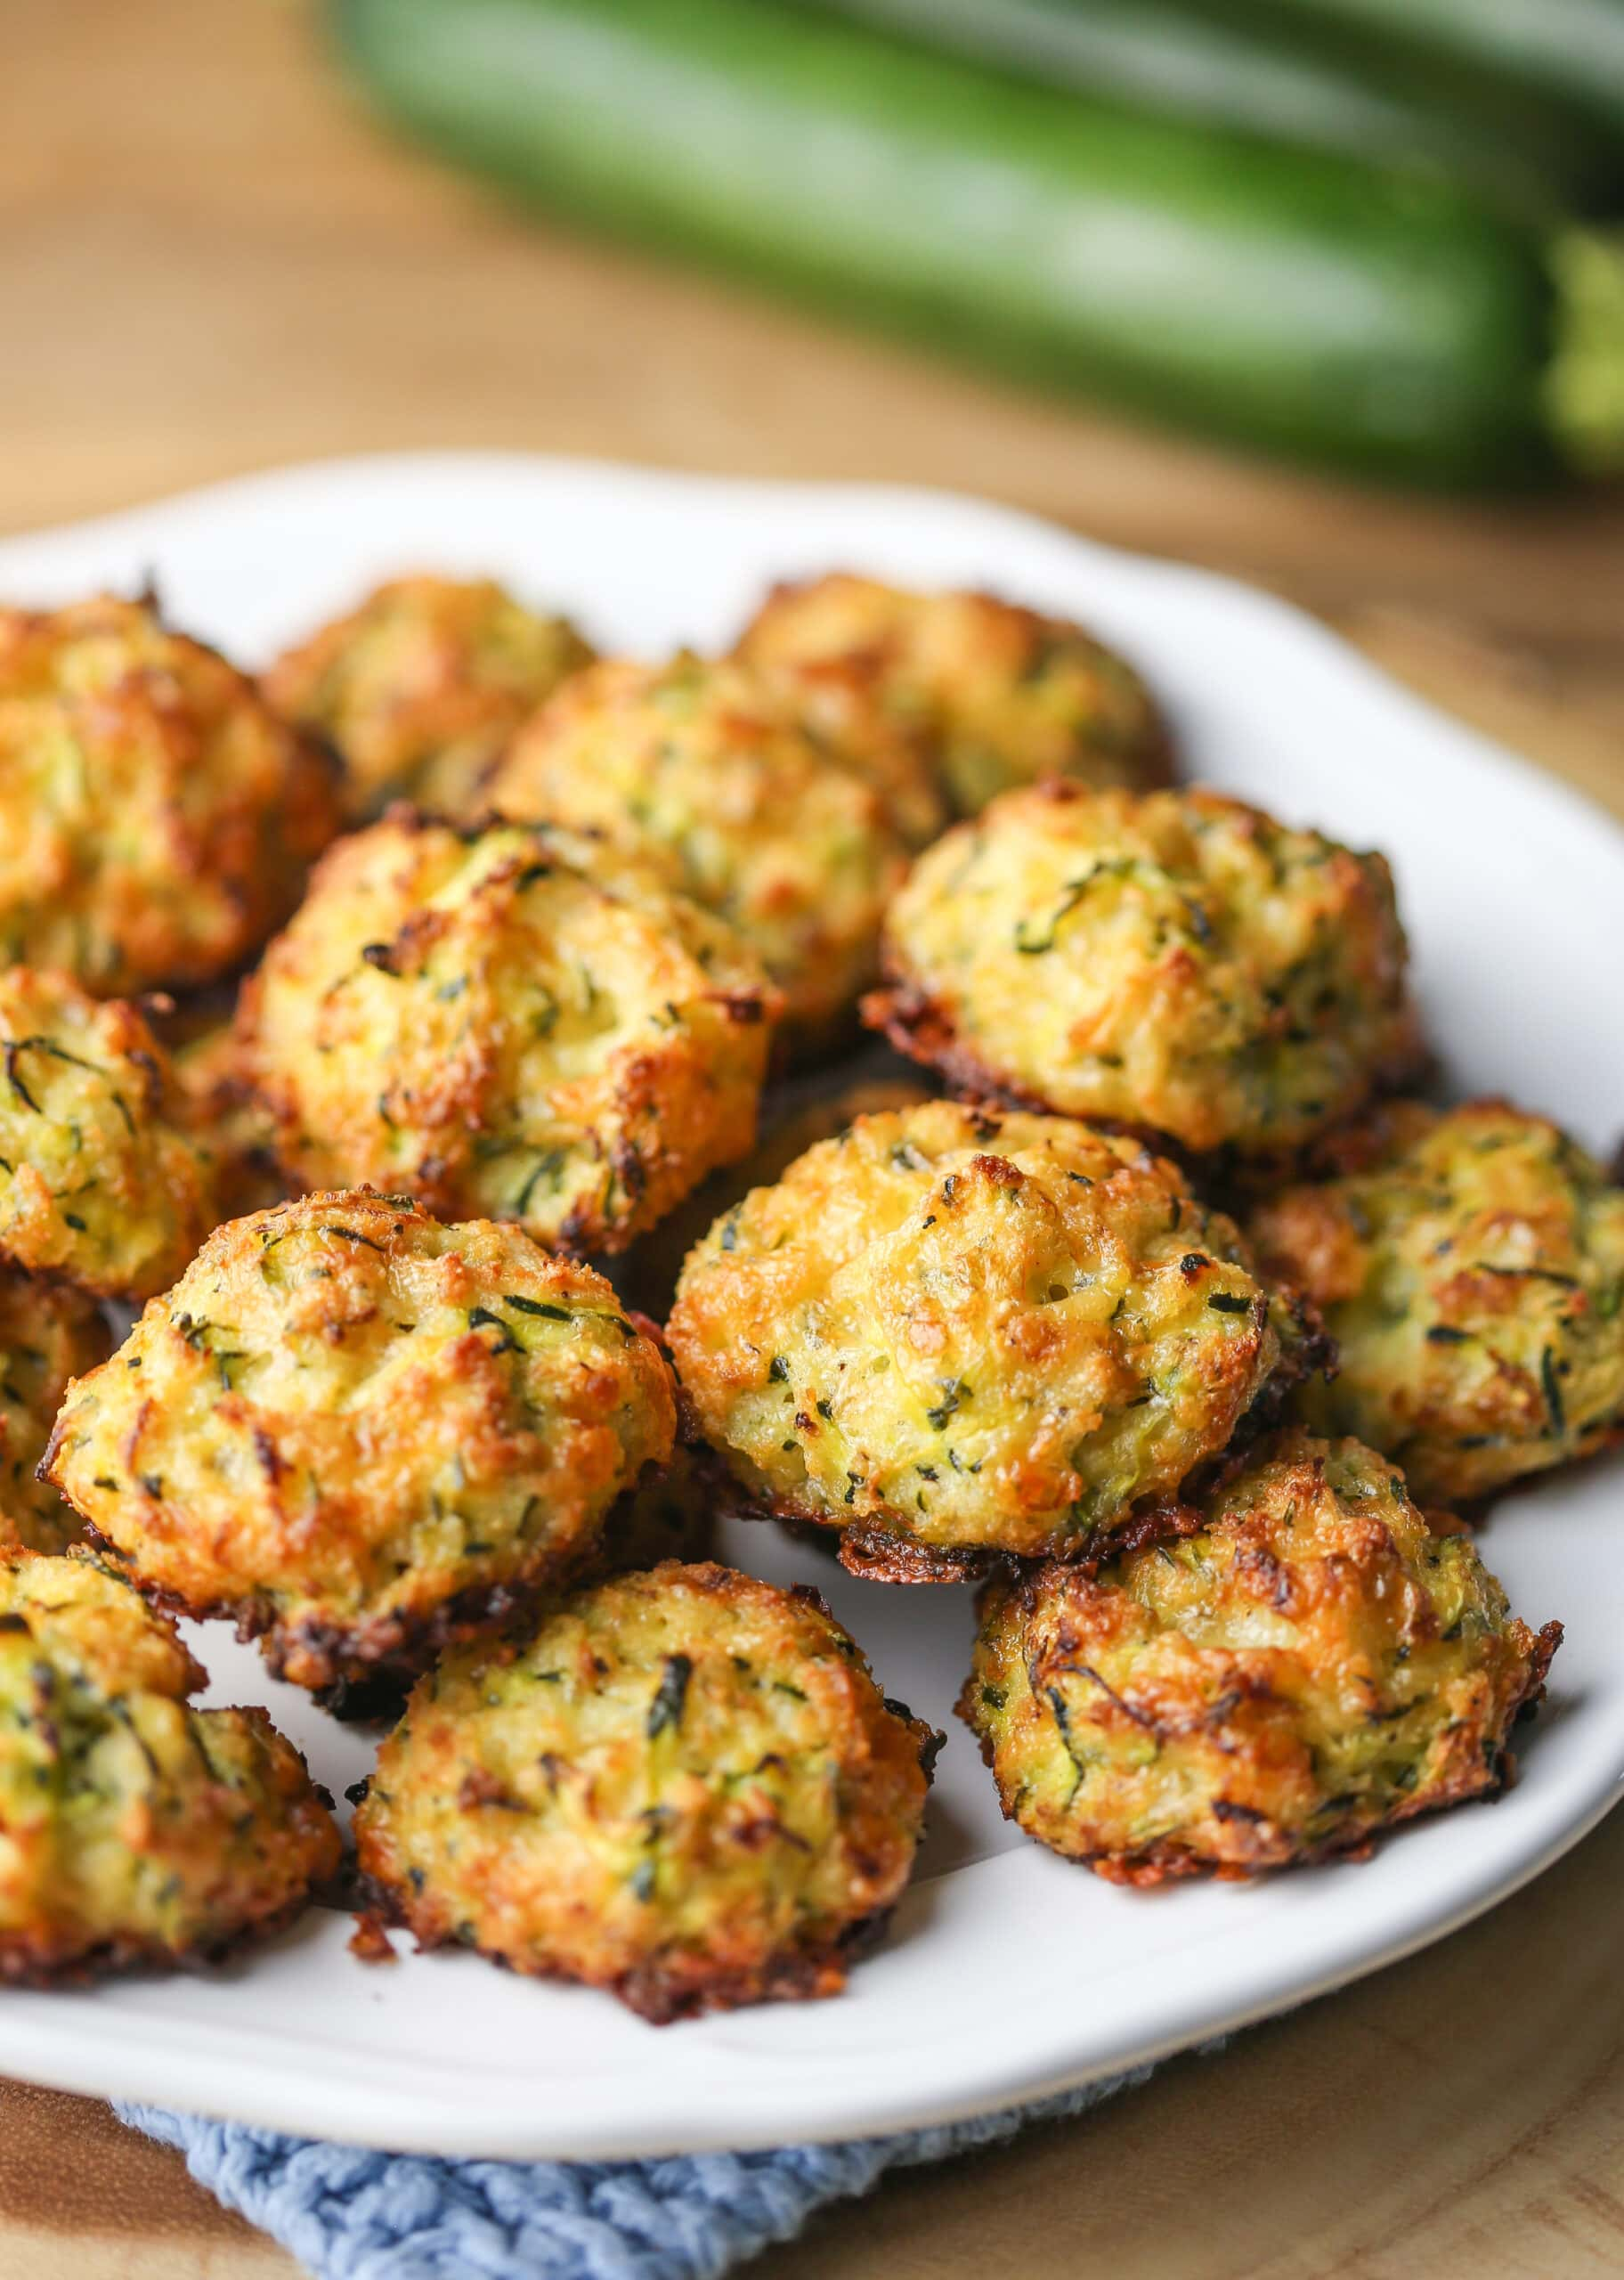 Golden-brown cheesy baked zucchini bites on a white plate.